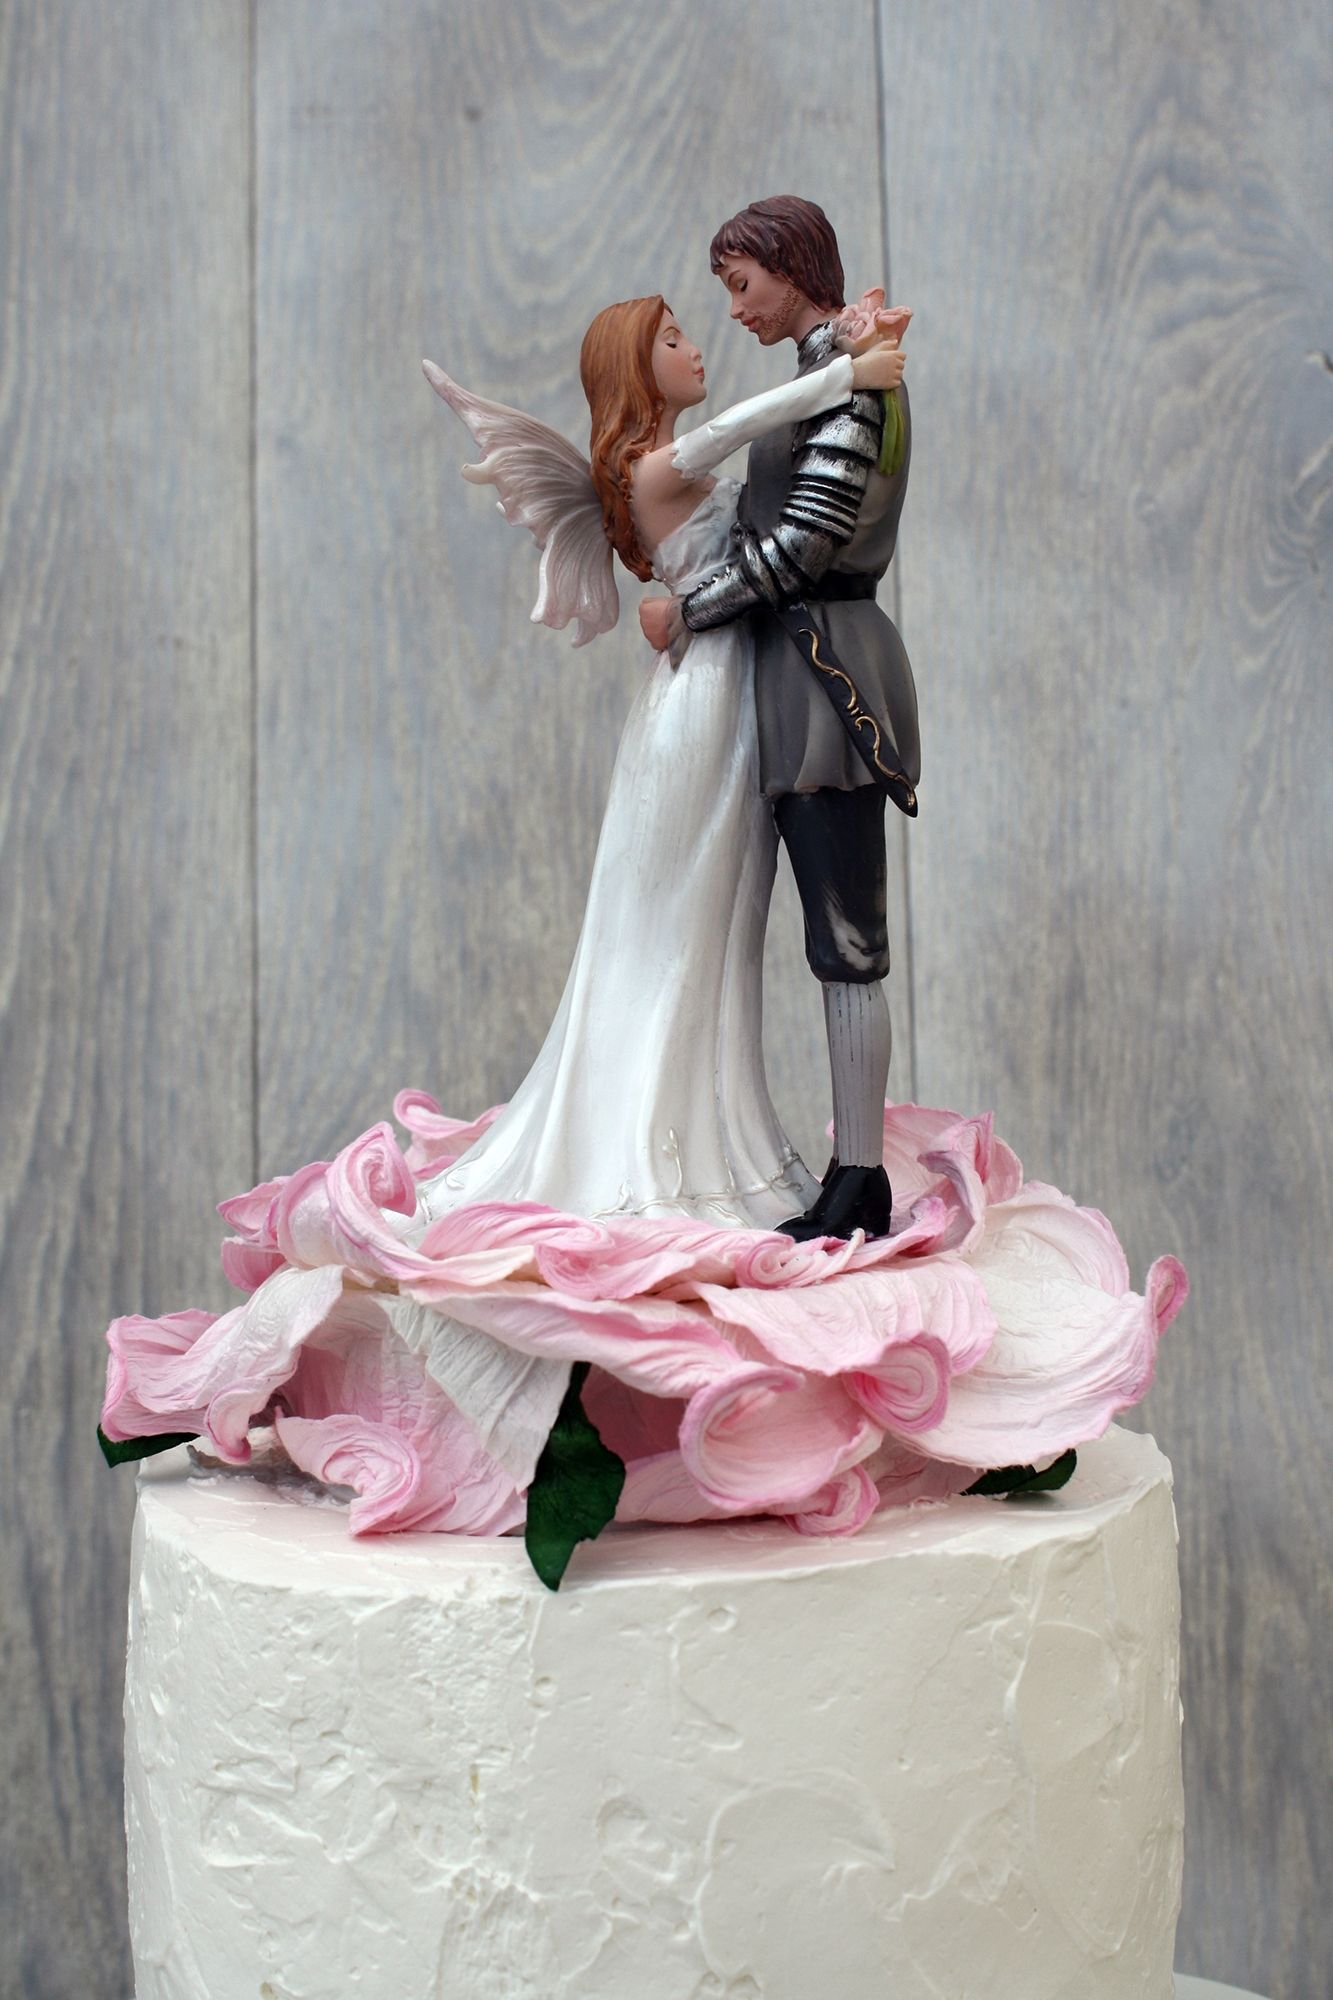 P The Bride And Groom Are Set On A Porcelain Base Wrapped In A